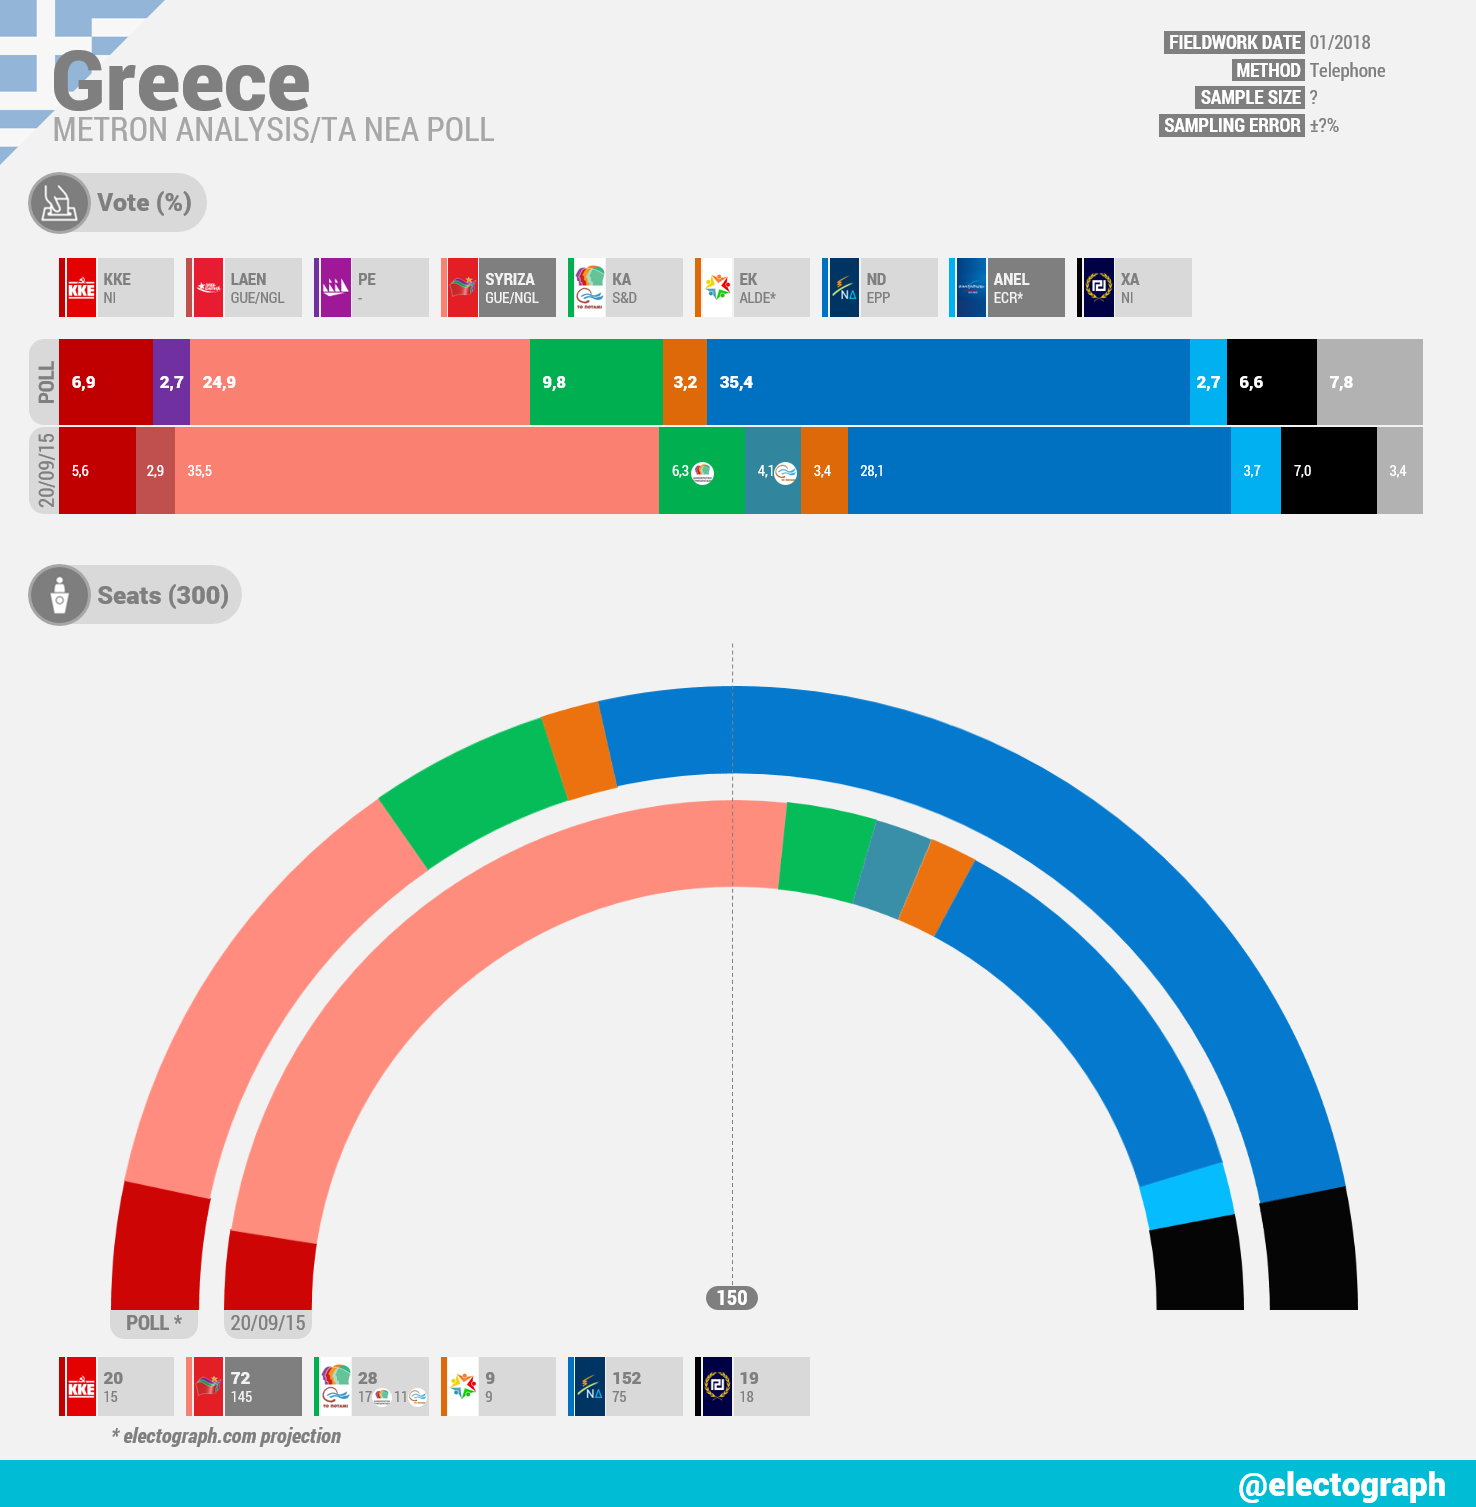 GREECE Metron Analysis poll chart for Ta Nea, January 2018